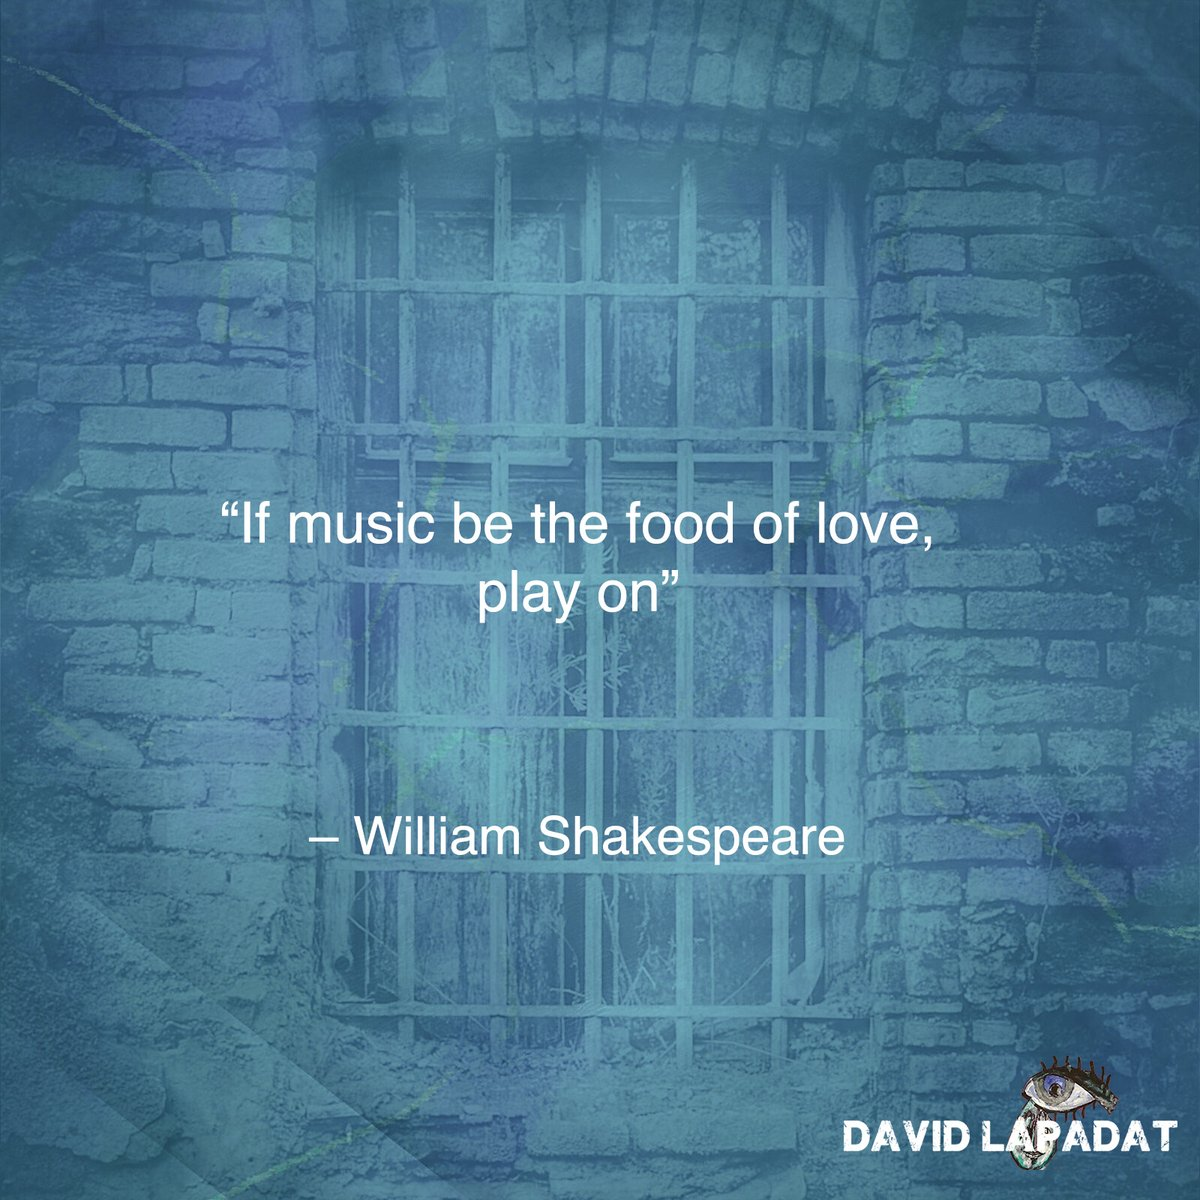 """If music be the food of love, play on""  . . . . . #williamshakespeare #quotestoponder #motivation#happyquotes #lifequote #lovequotespics #bestquotesever #lifequotestagram #lifesayings #musicquote #mindsetquotes #inspire #lovequotespic.twitter.com/03E3i23aHz"